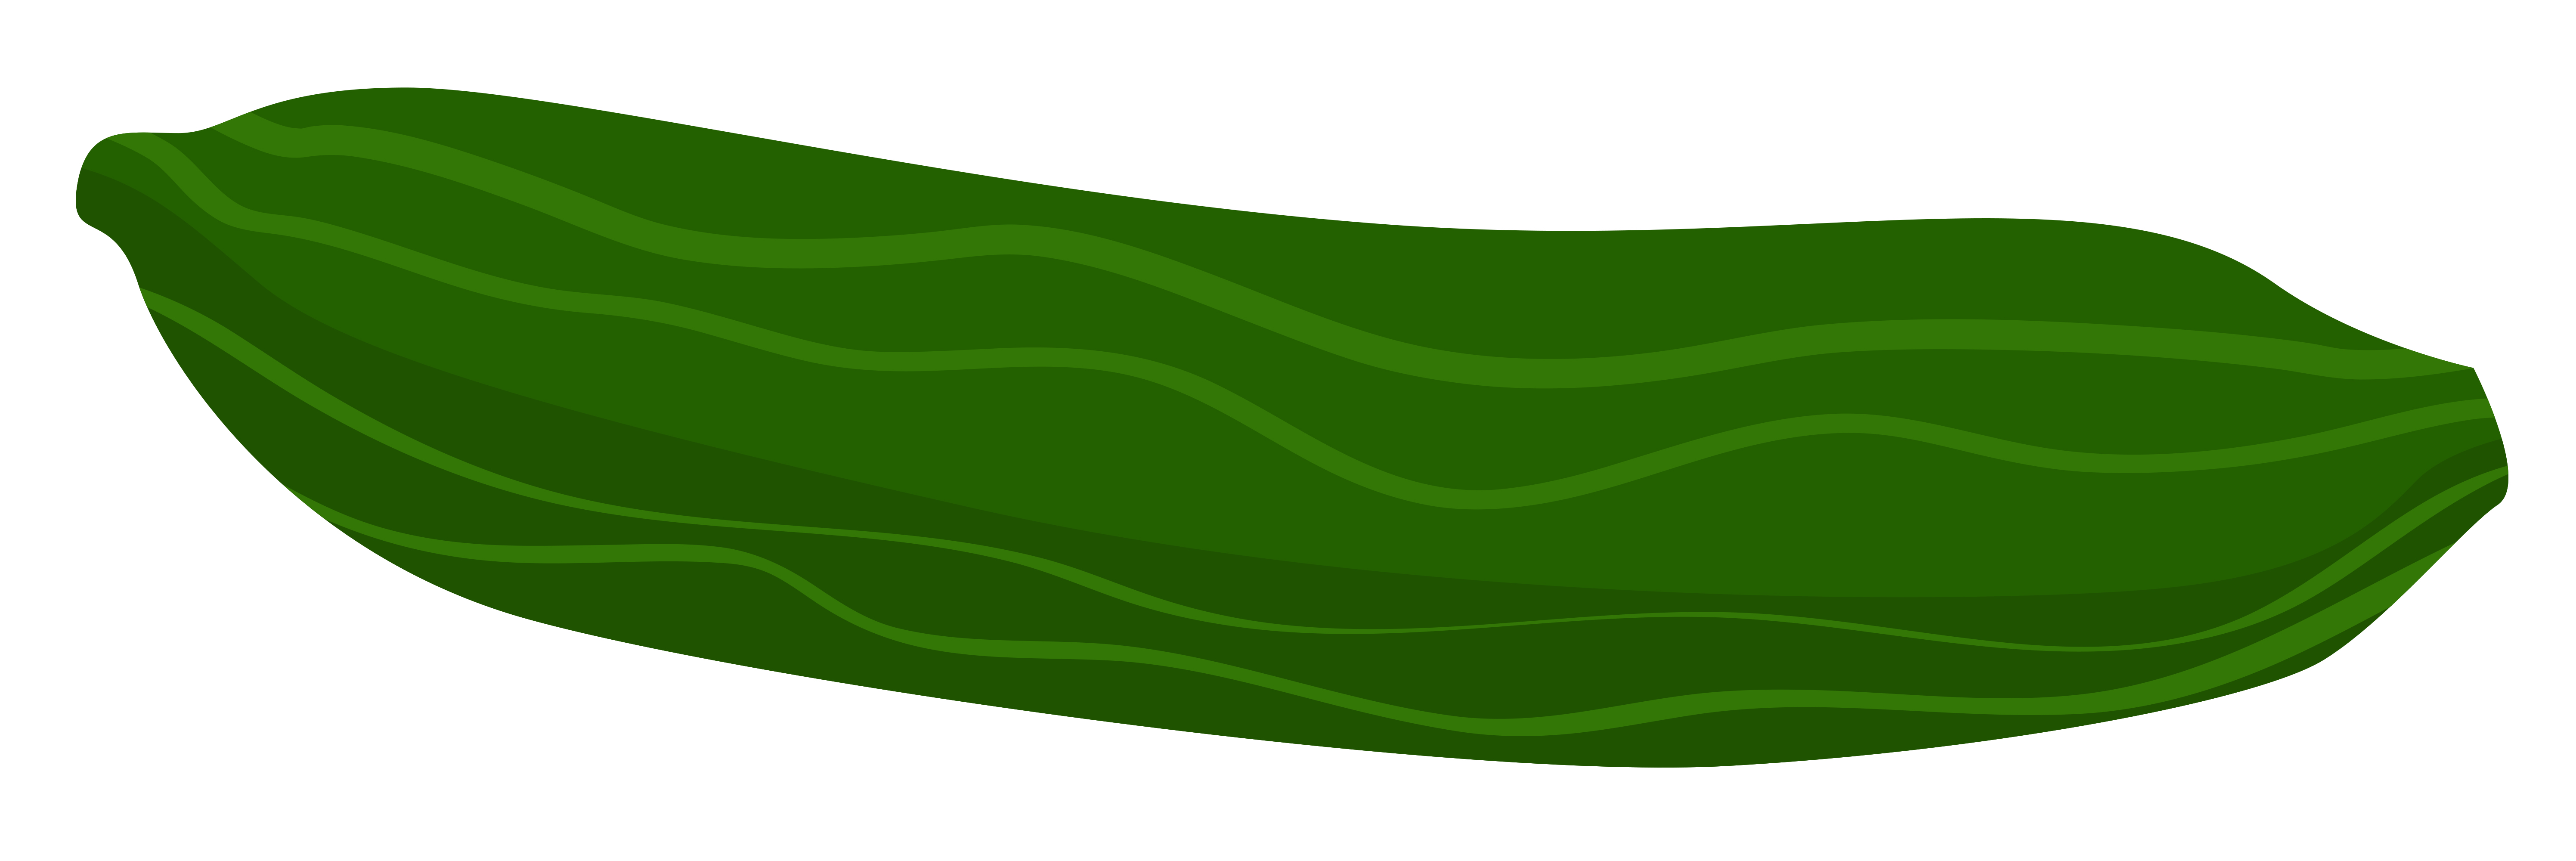 Free cliparts download clip. Cucumber clipart small